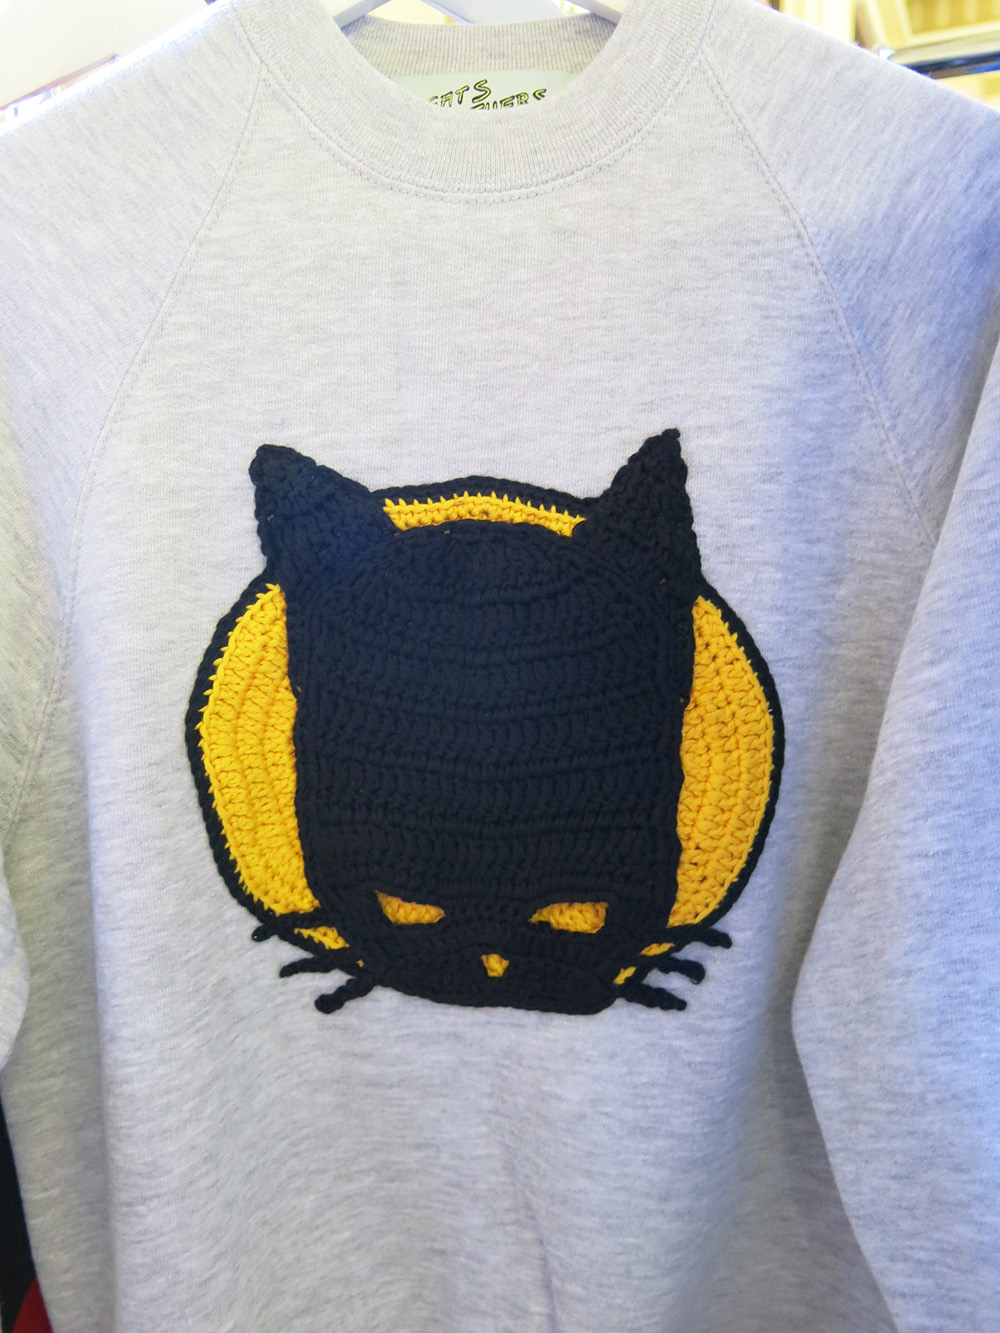 Cats Brothers crocheted sweatshirt